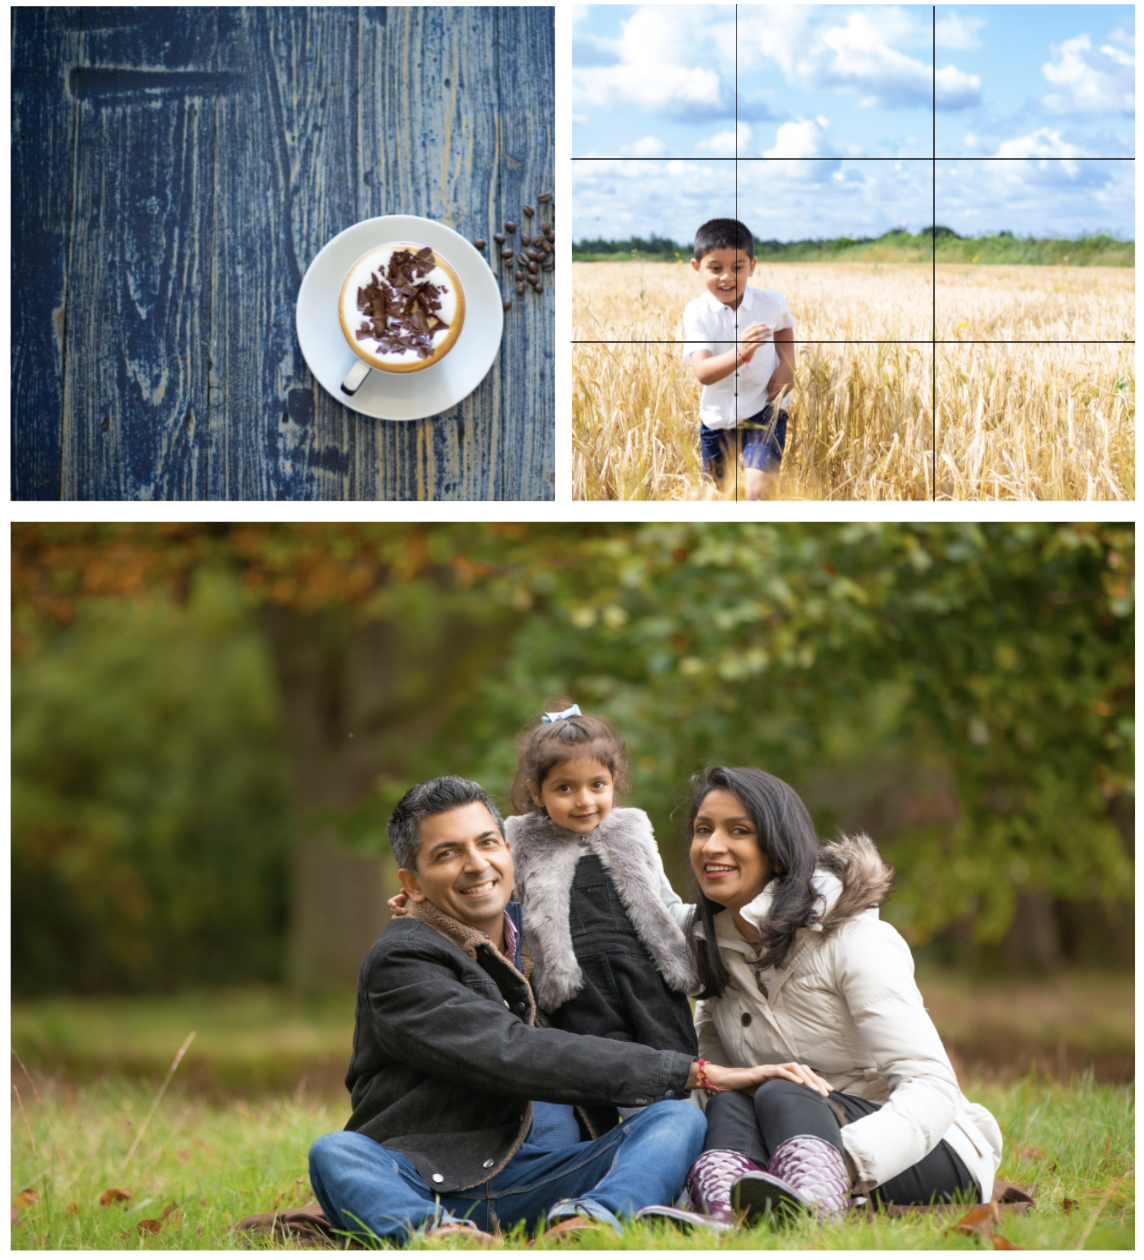 Think about composition for social media photos